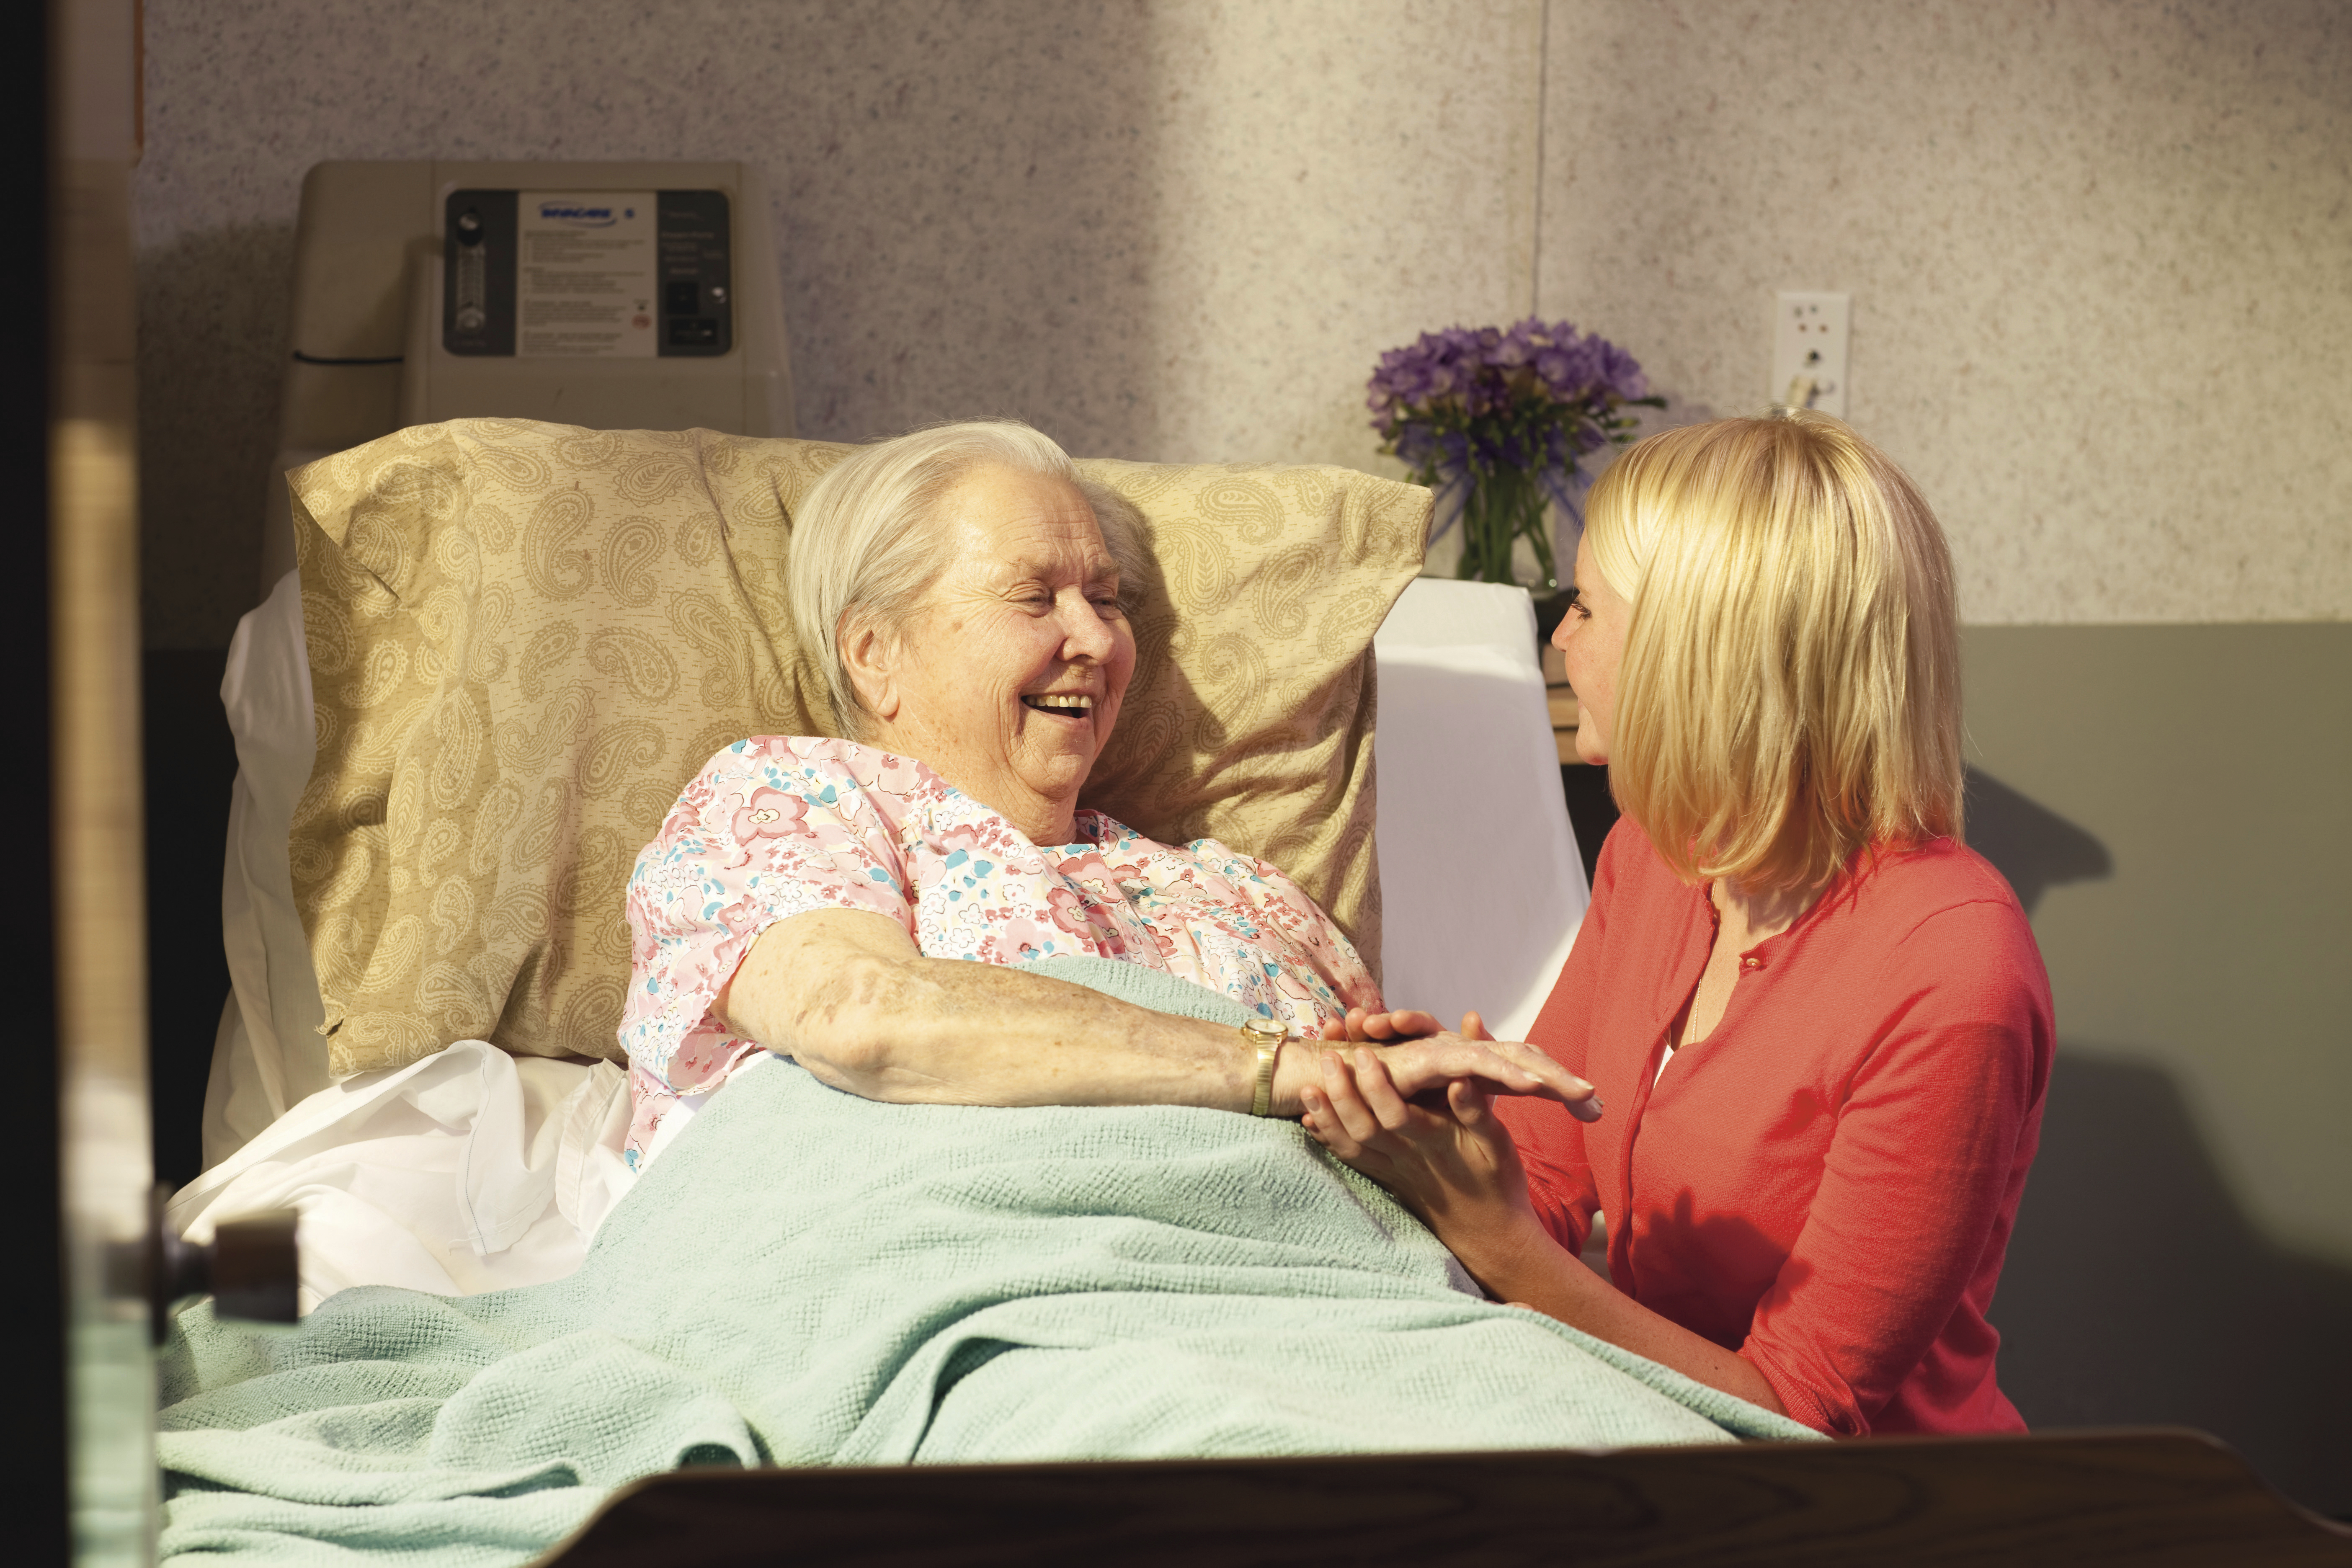 A young woman visits an elderly woman in the hospital.